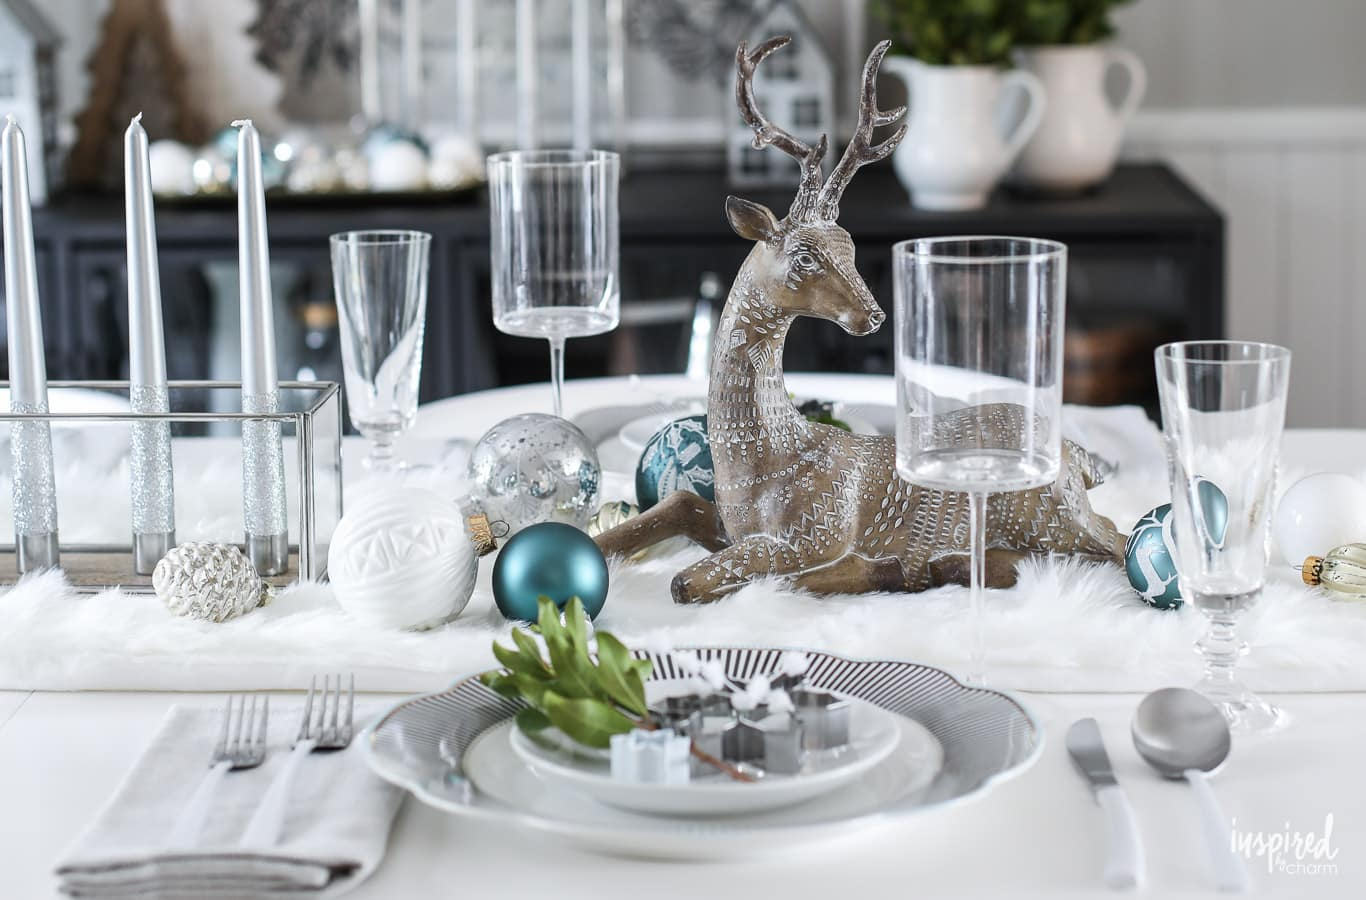 Festive christmas table decor ideas holiday decorating tips - Christmas table setting ideas ...